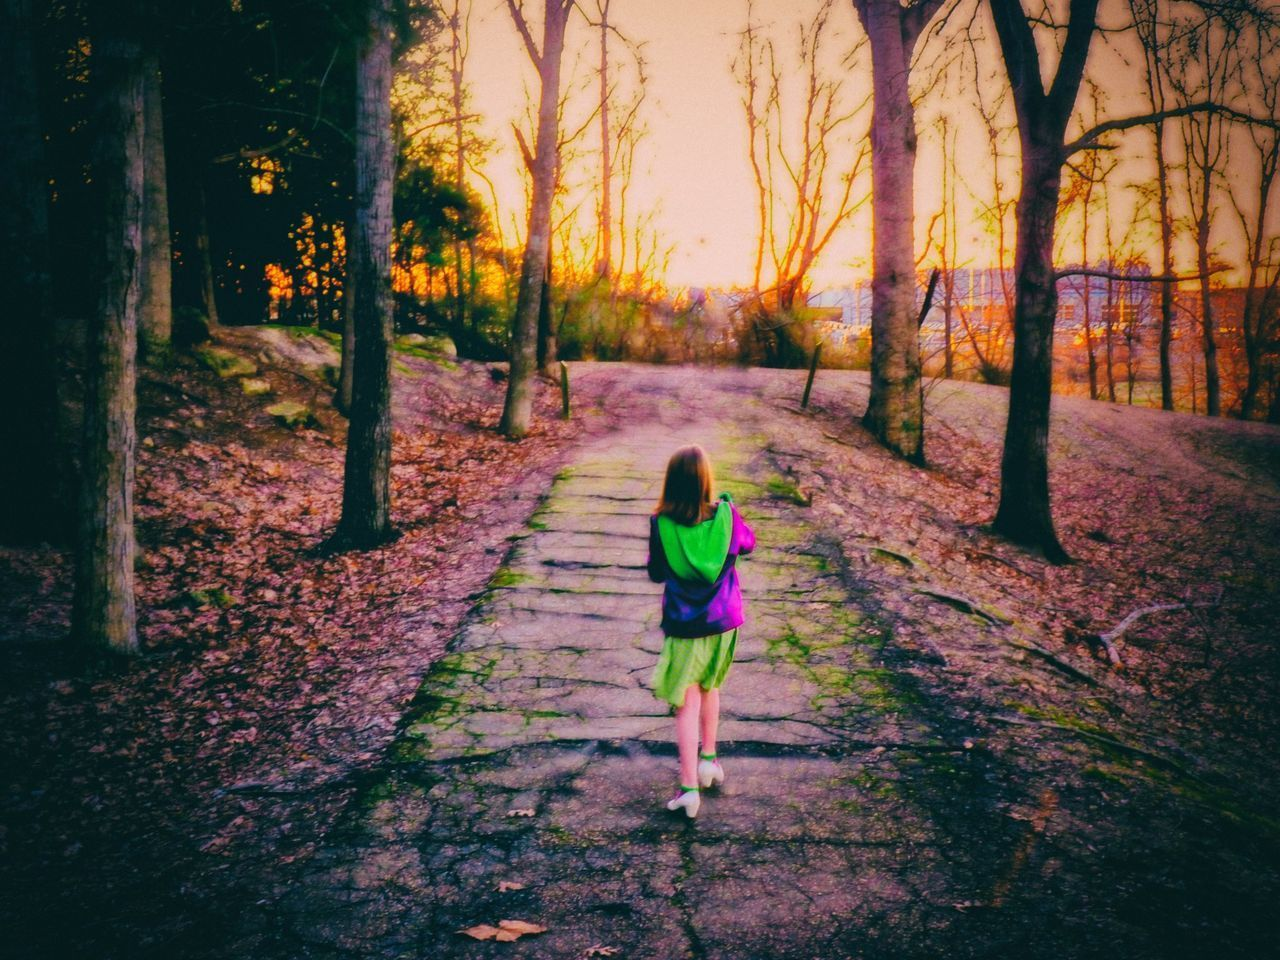 Rear View Walking Girls One Person The Way Forward Childhood Outdoors Trees Photo Art Nature Path Sunset Colors